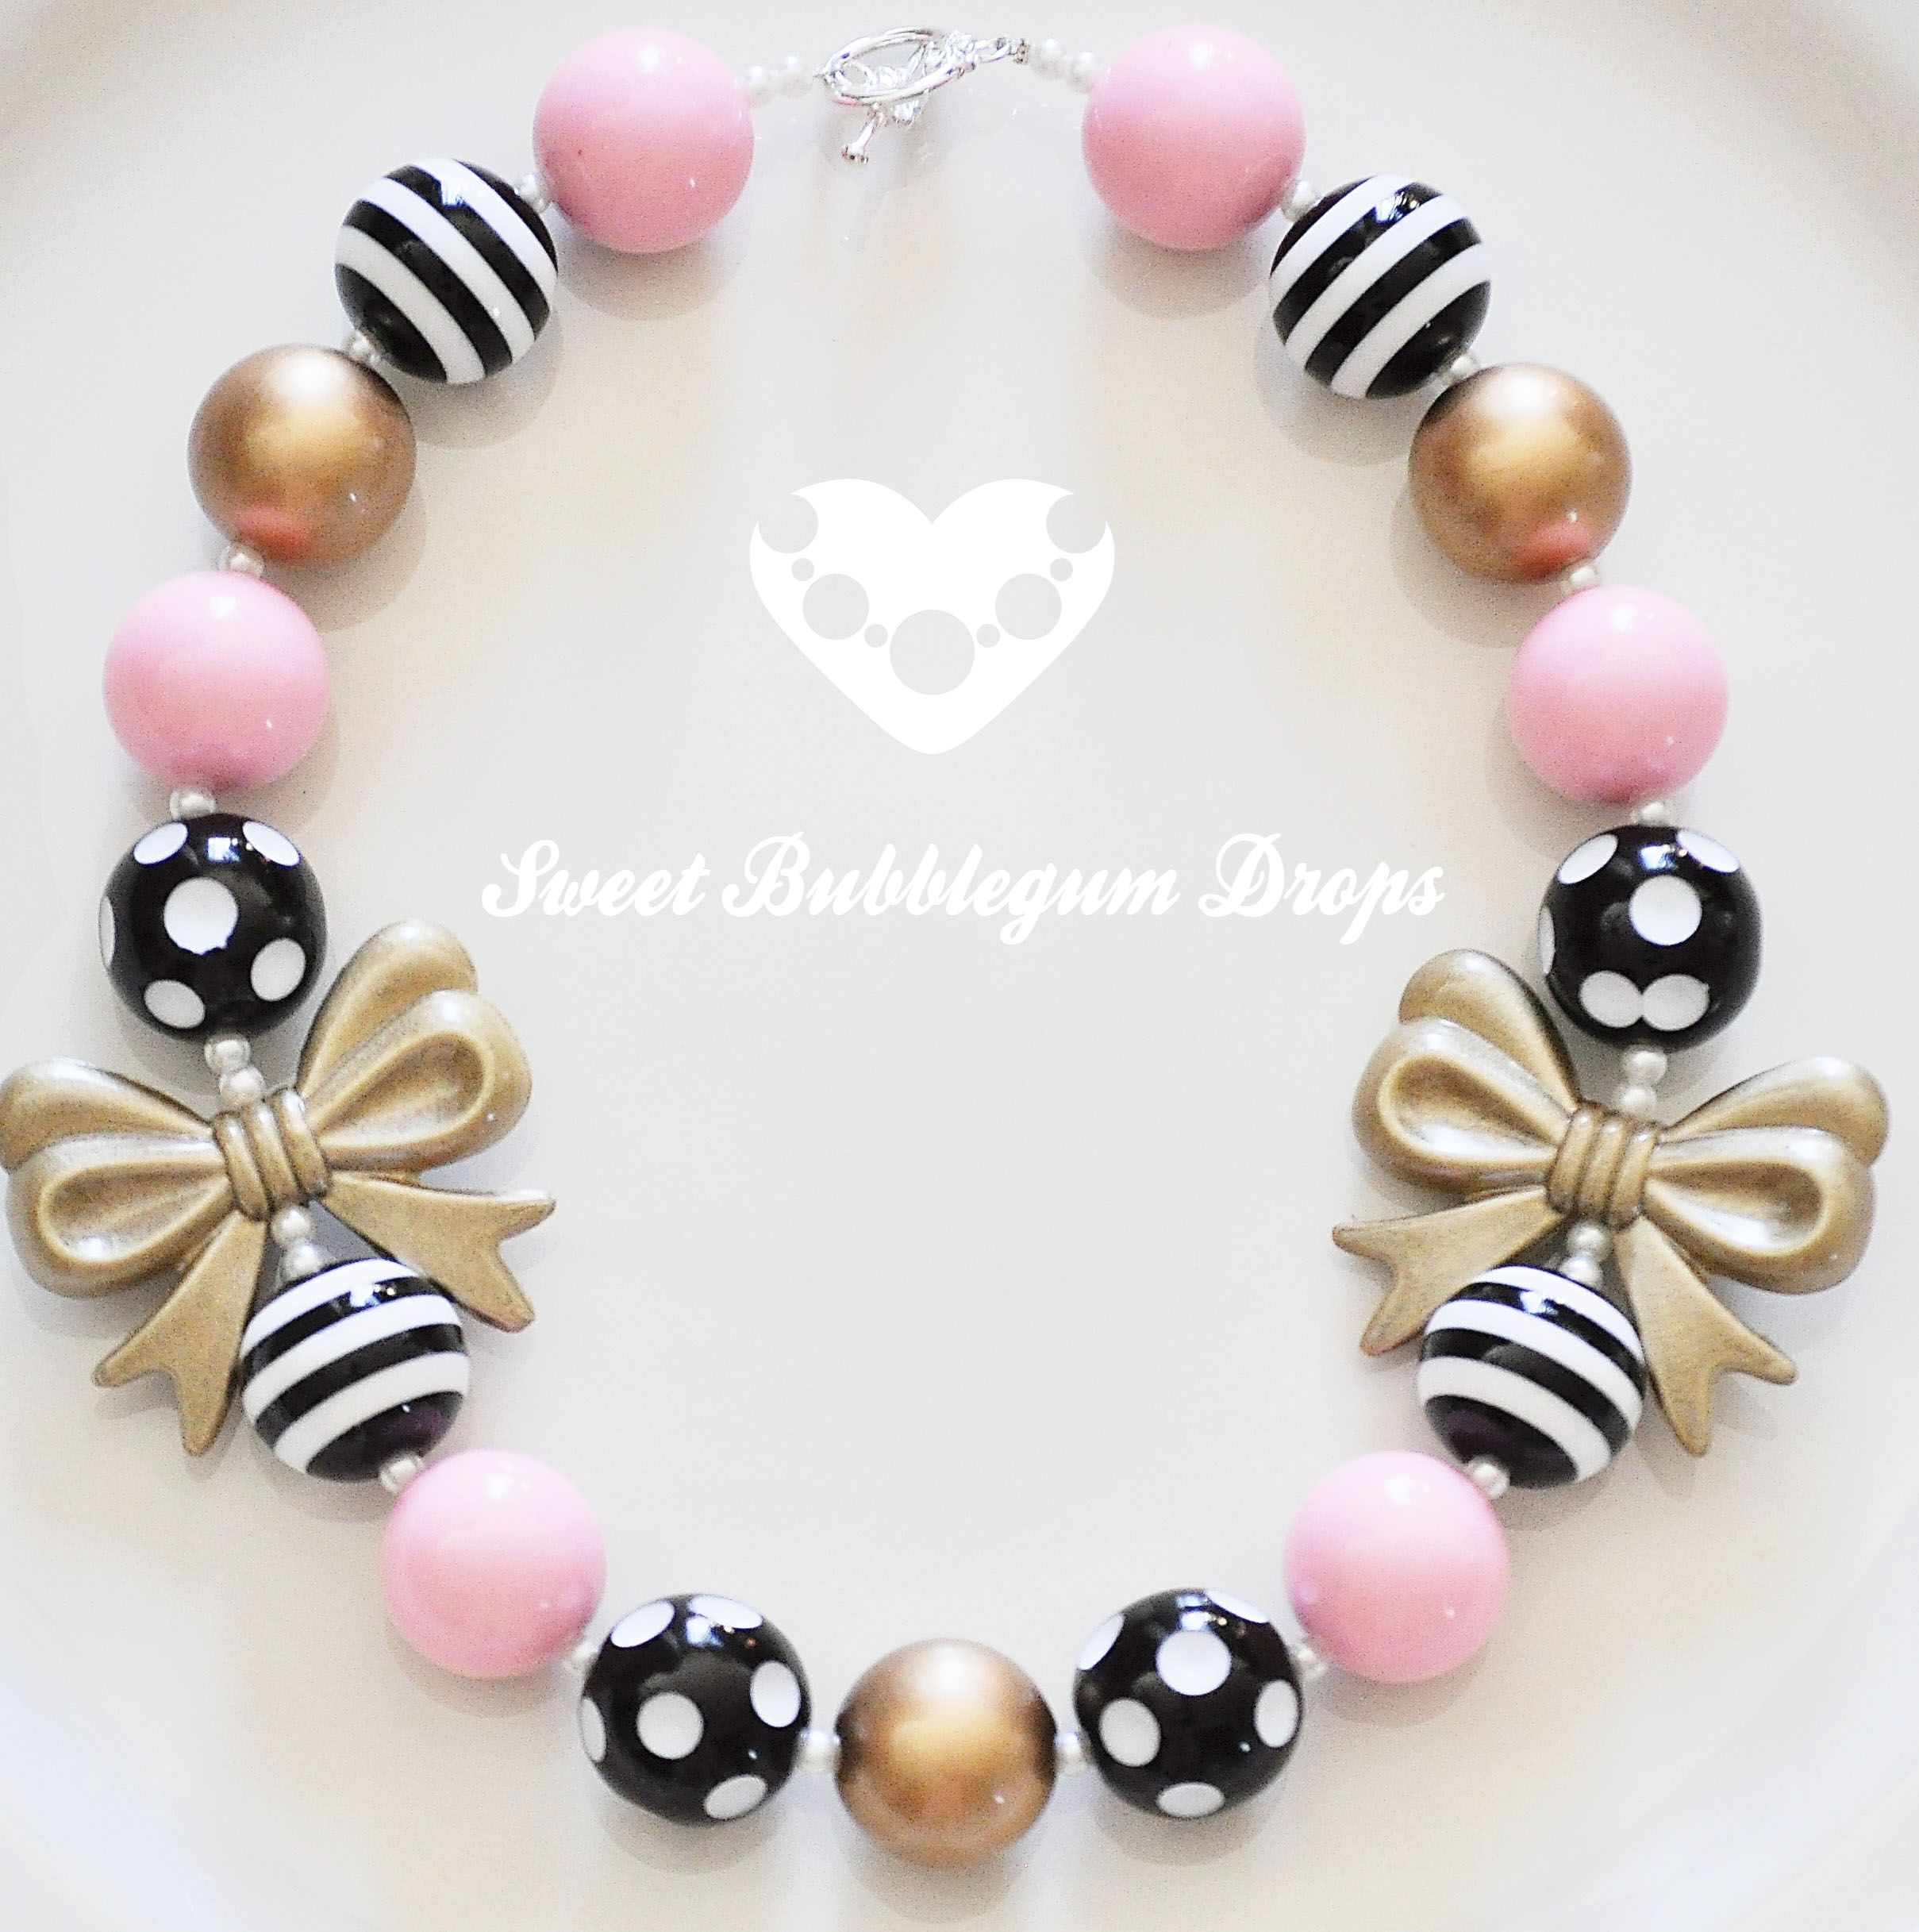 Chunky girl necklace. Love this piece! https://www.etsy.com/listing/180681028/chunky-necklace-ready-to-ship-pink-black?